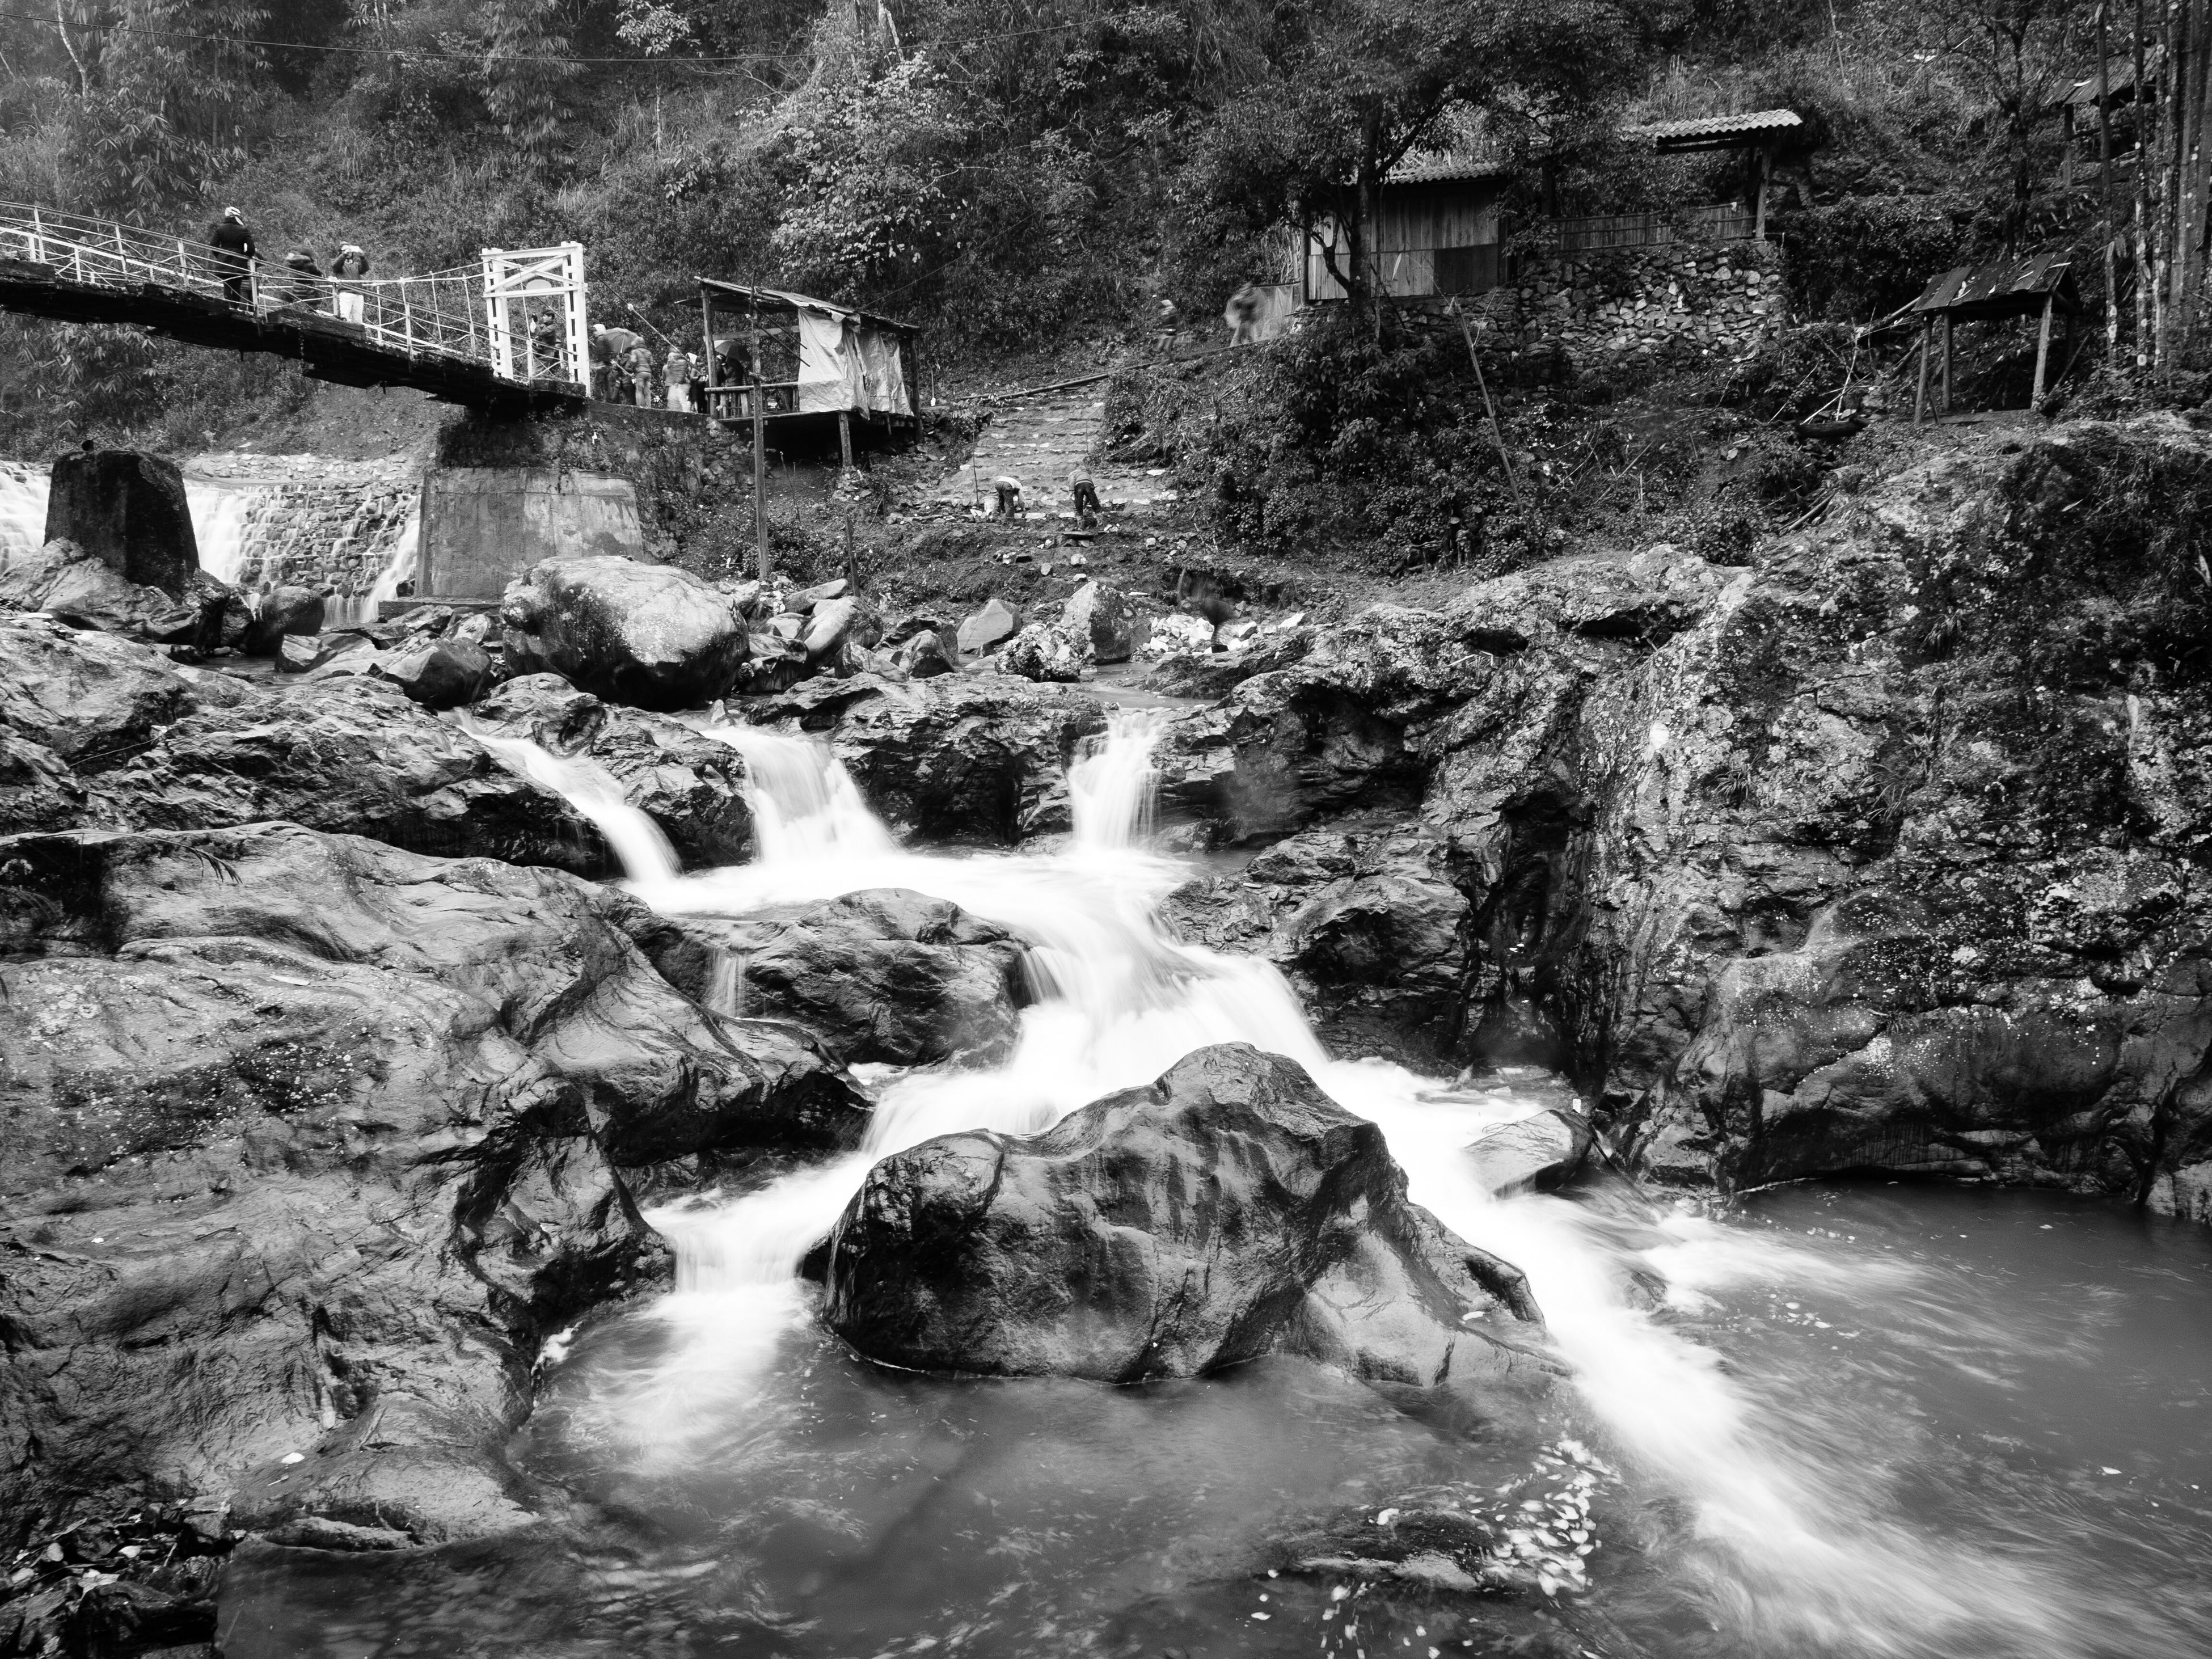 built structure, architecture, building exterior, water, flowing water, tree, motion, house, flowing, waterfall, rock - object, nature, outdoors, day, no people, stream, residential building, surf, river, residential structure